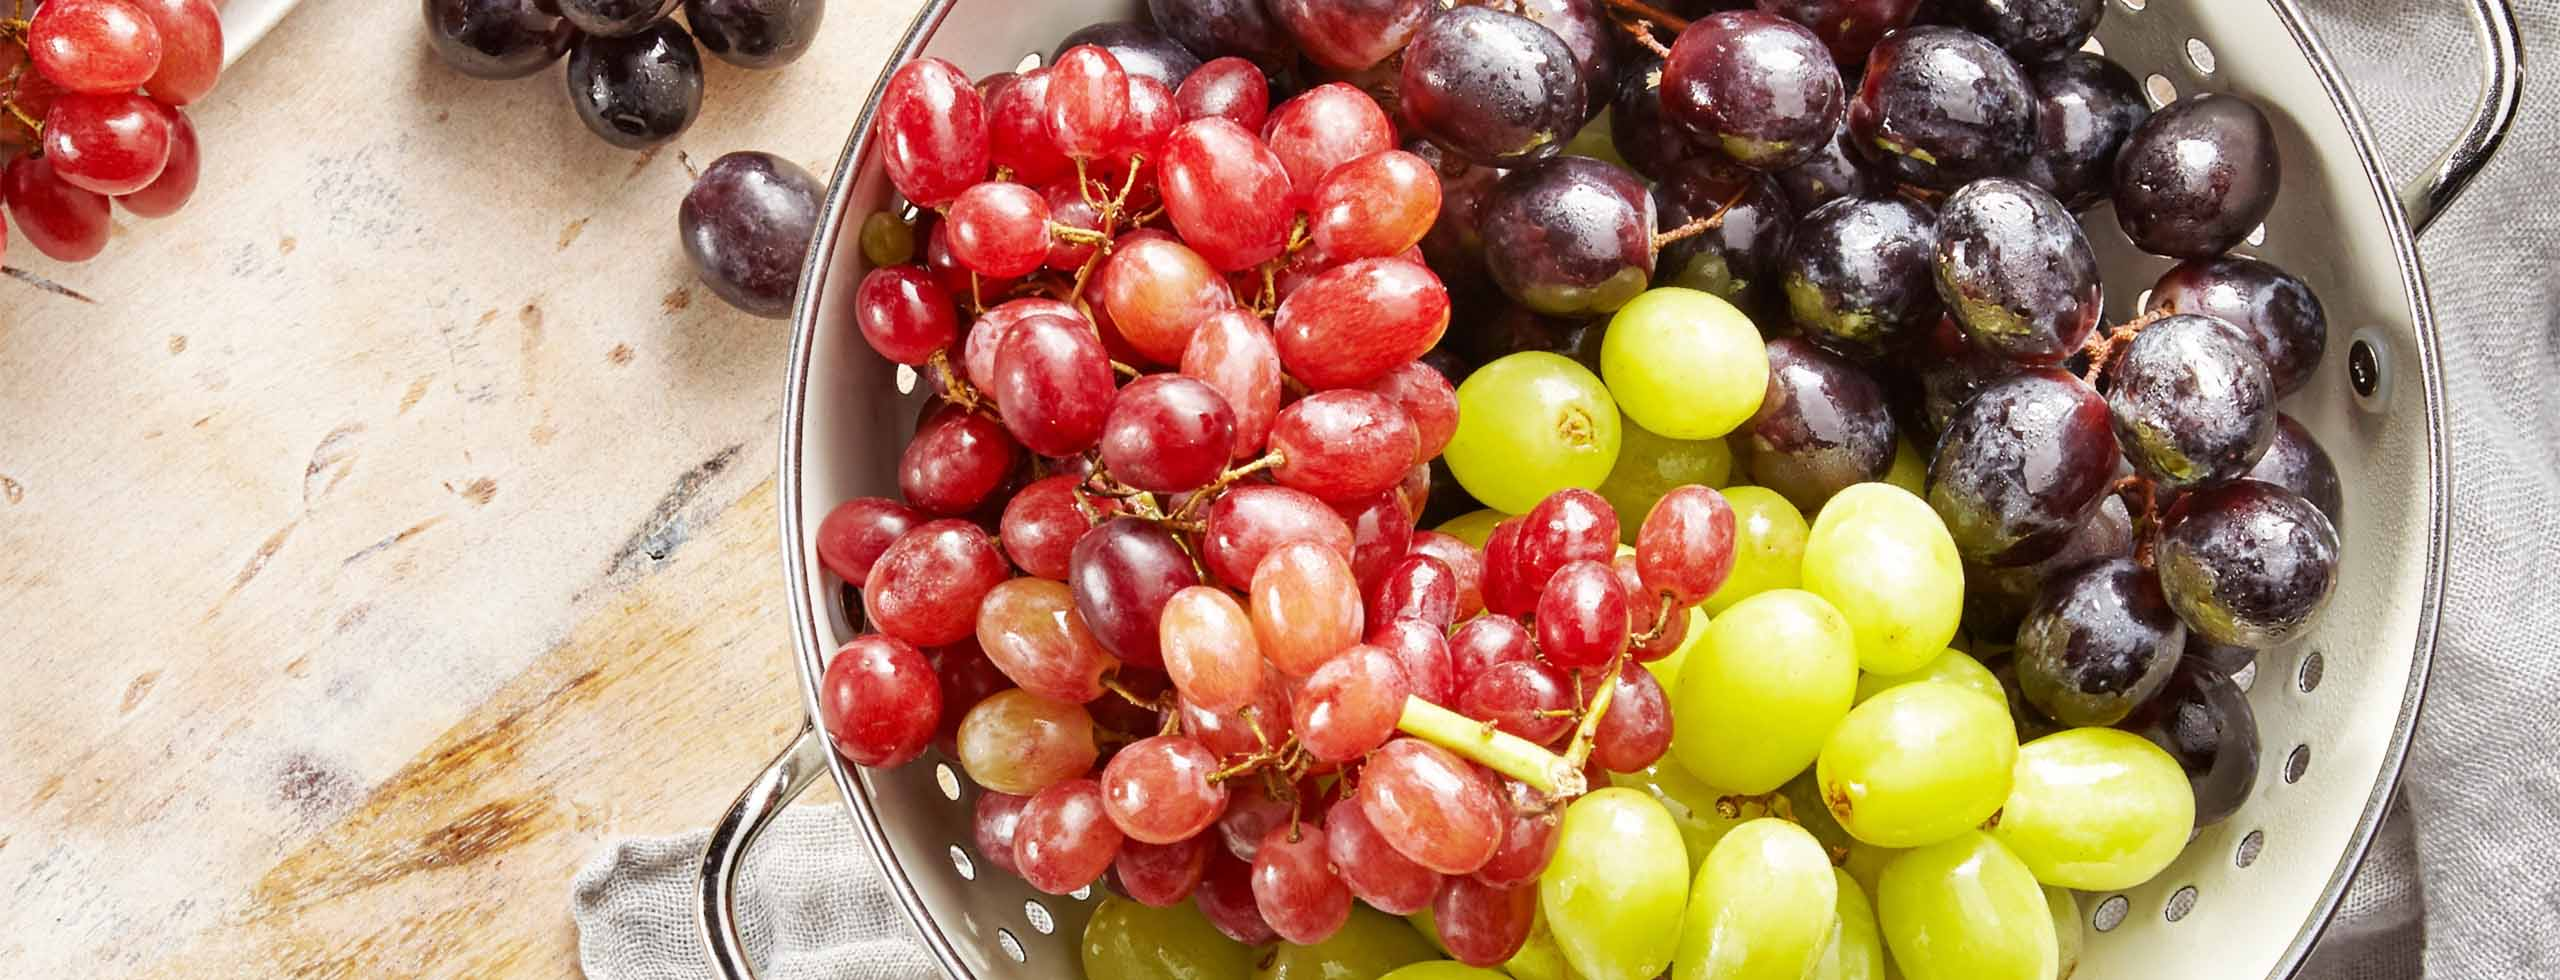 5 Types Of Grapes You Could Be Eating